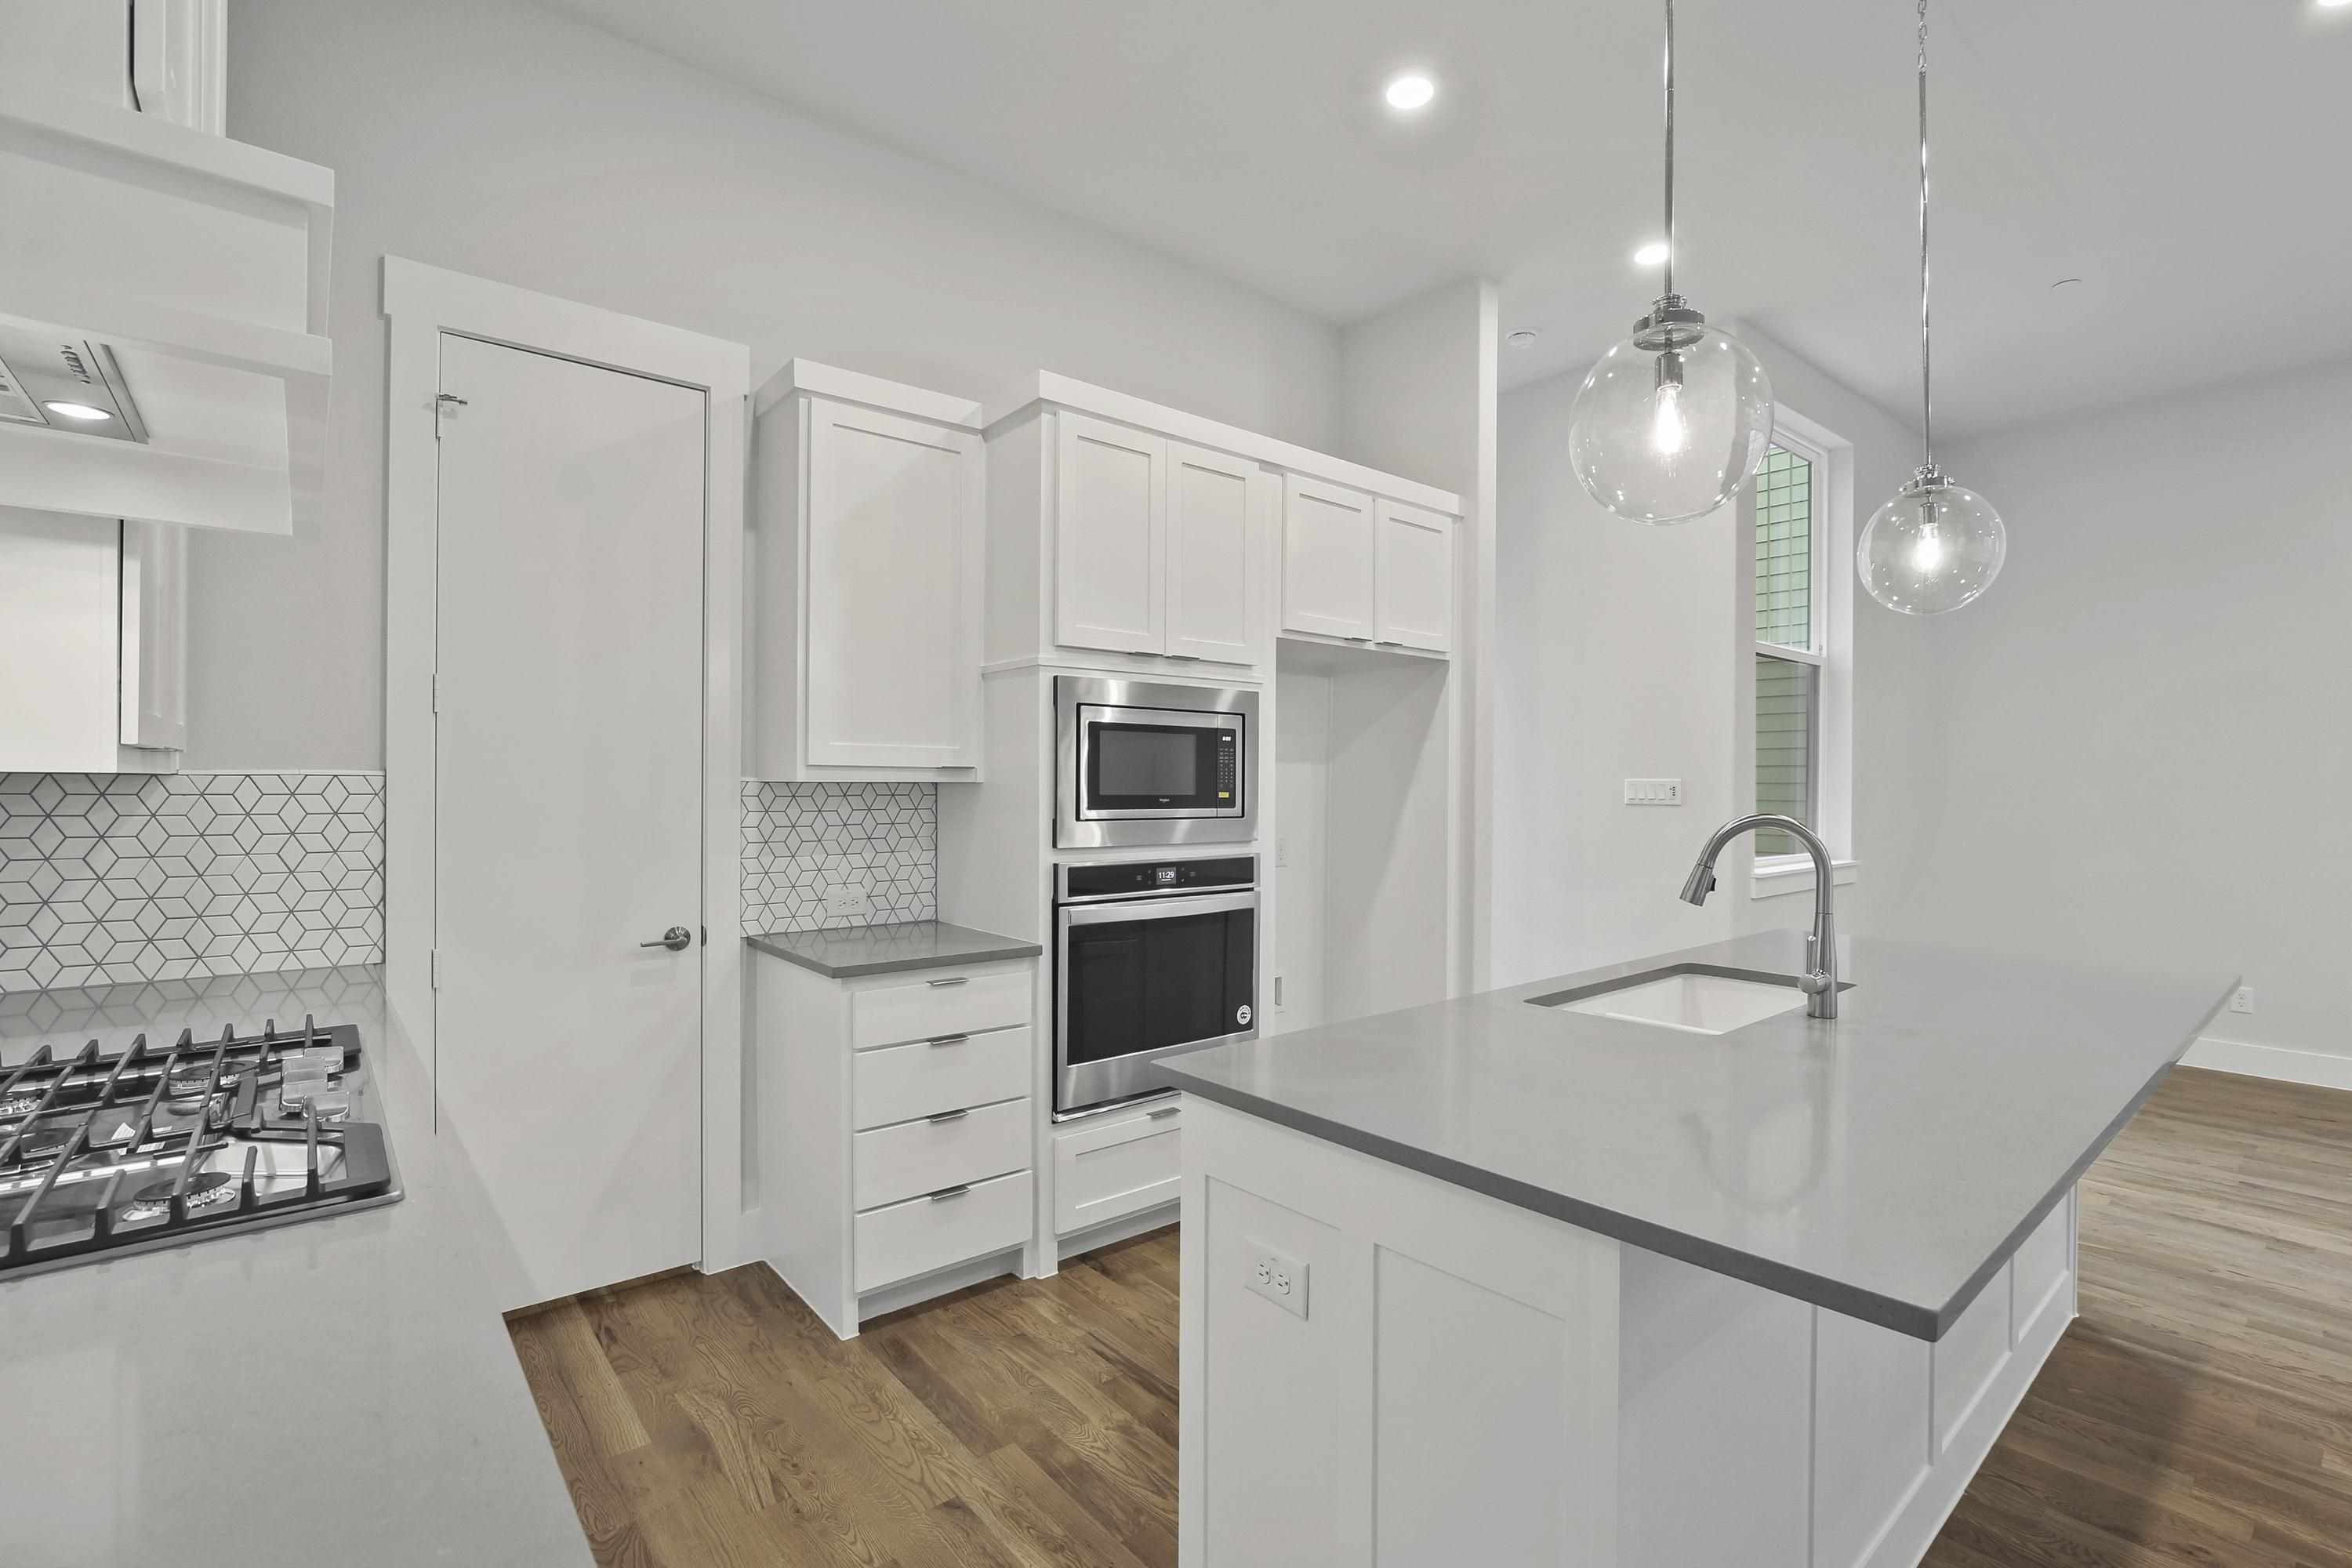 Kitchen featured in the Newcastle By Centre Living Homes in Dallas, TX